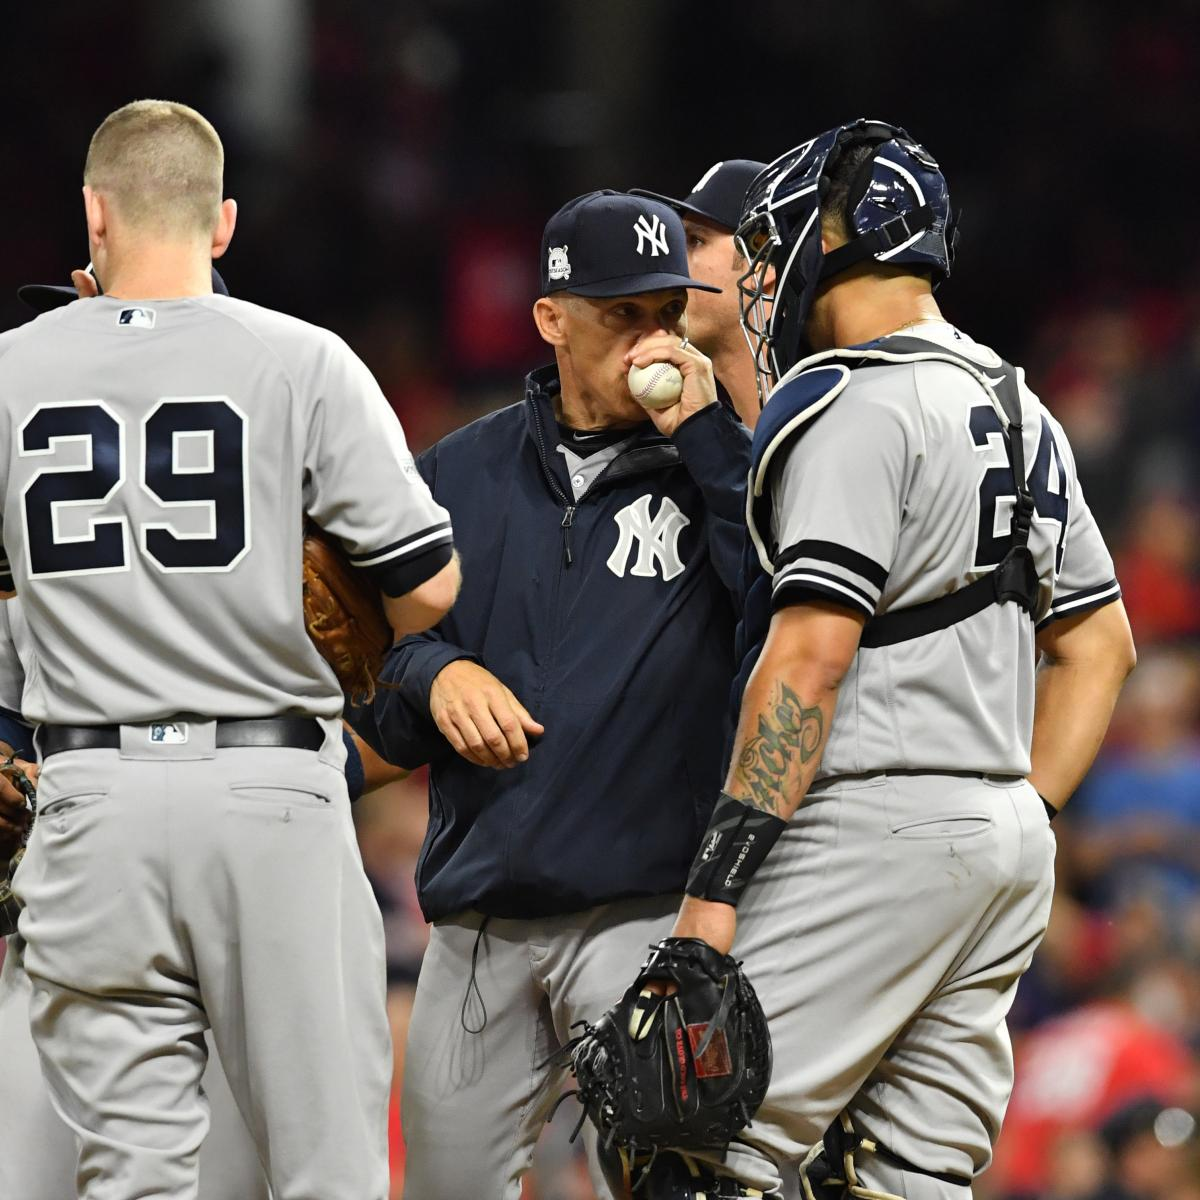 Todd Frazier Says Yankees' Game 5 Win vs. Indians Was for Joe Girardi